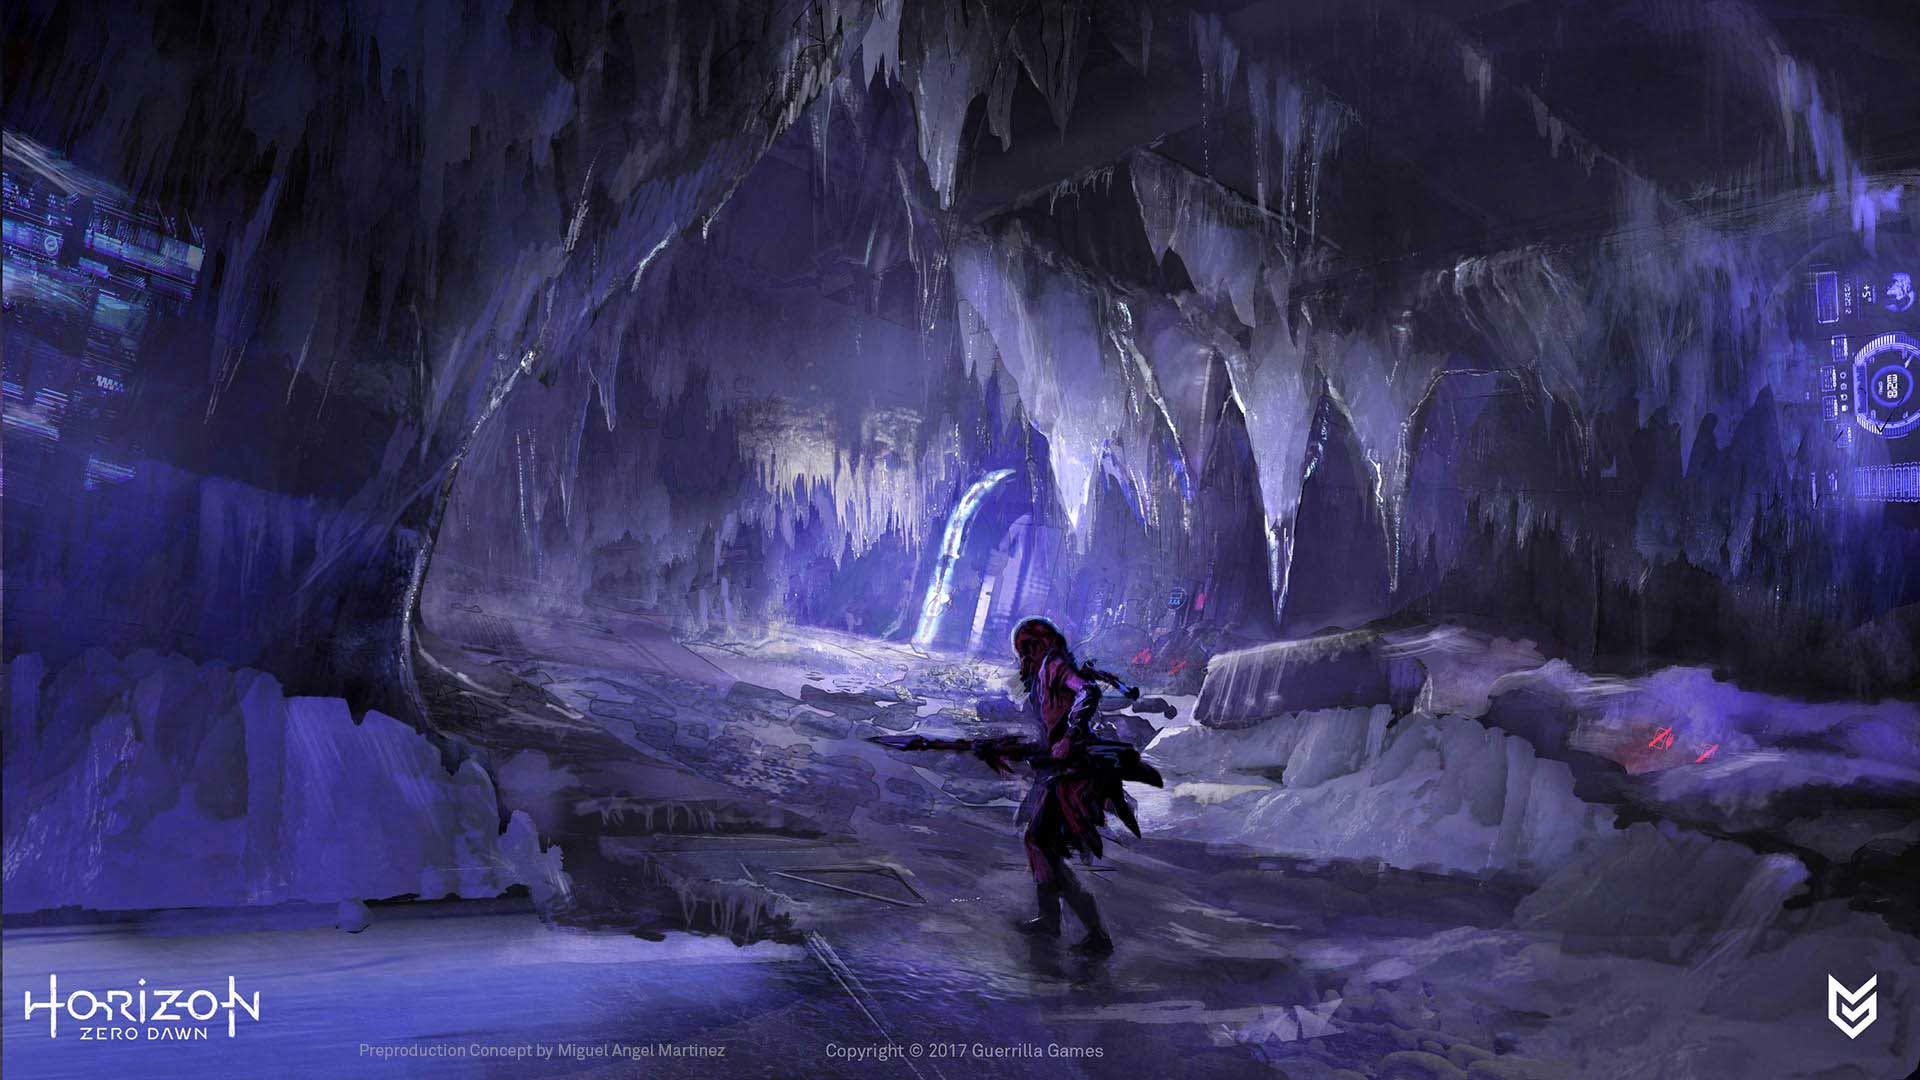 horizon-zero-dawn-frozen-bunker-concept-art